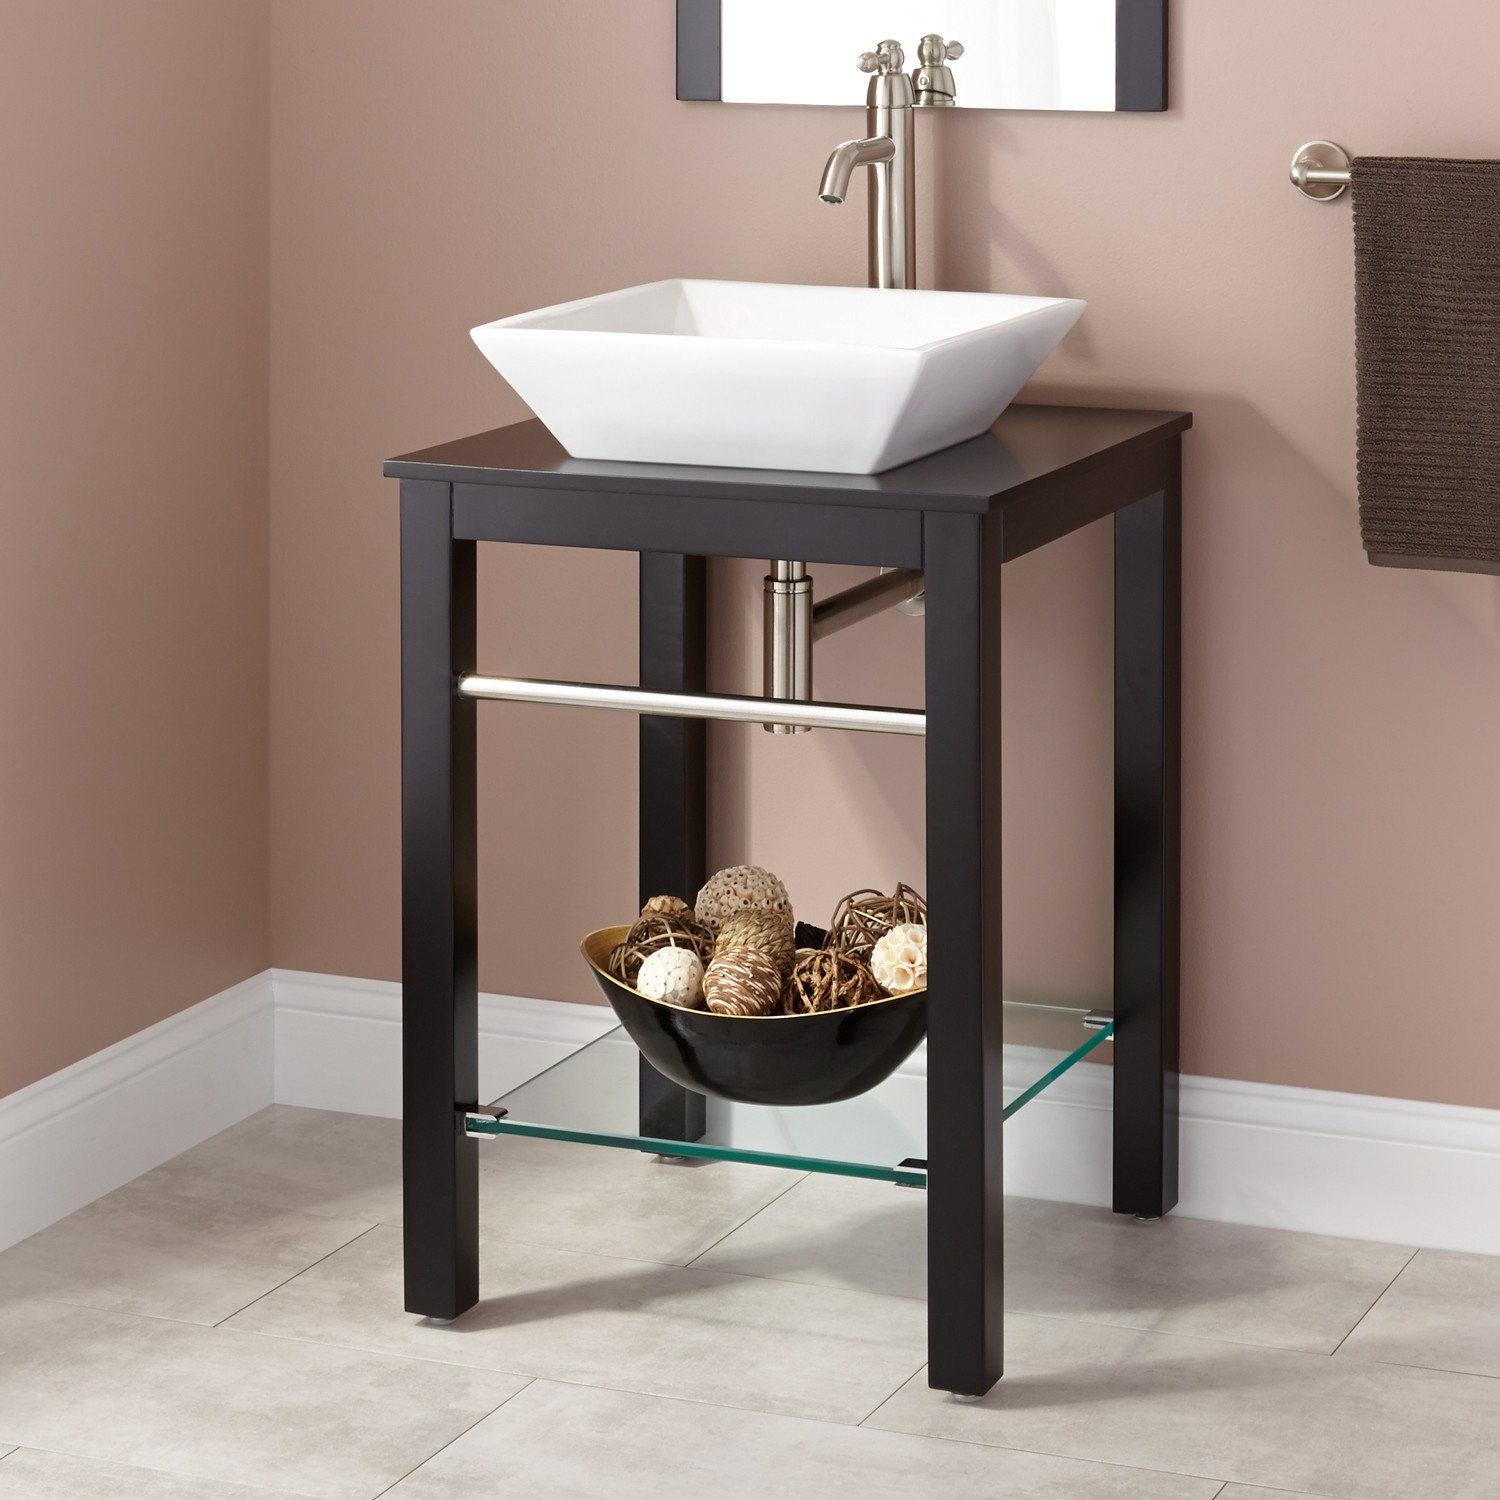 "Fabulous 22"" Cayneston Vessel Sink Console Vanity - Black - Bathroom throughout Bathroom Sink And Vanity"